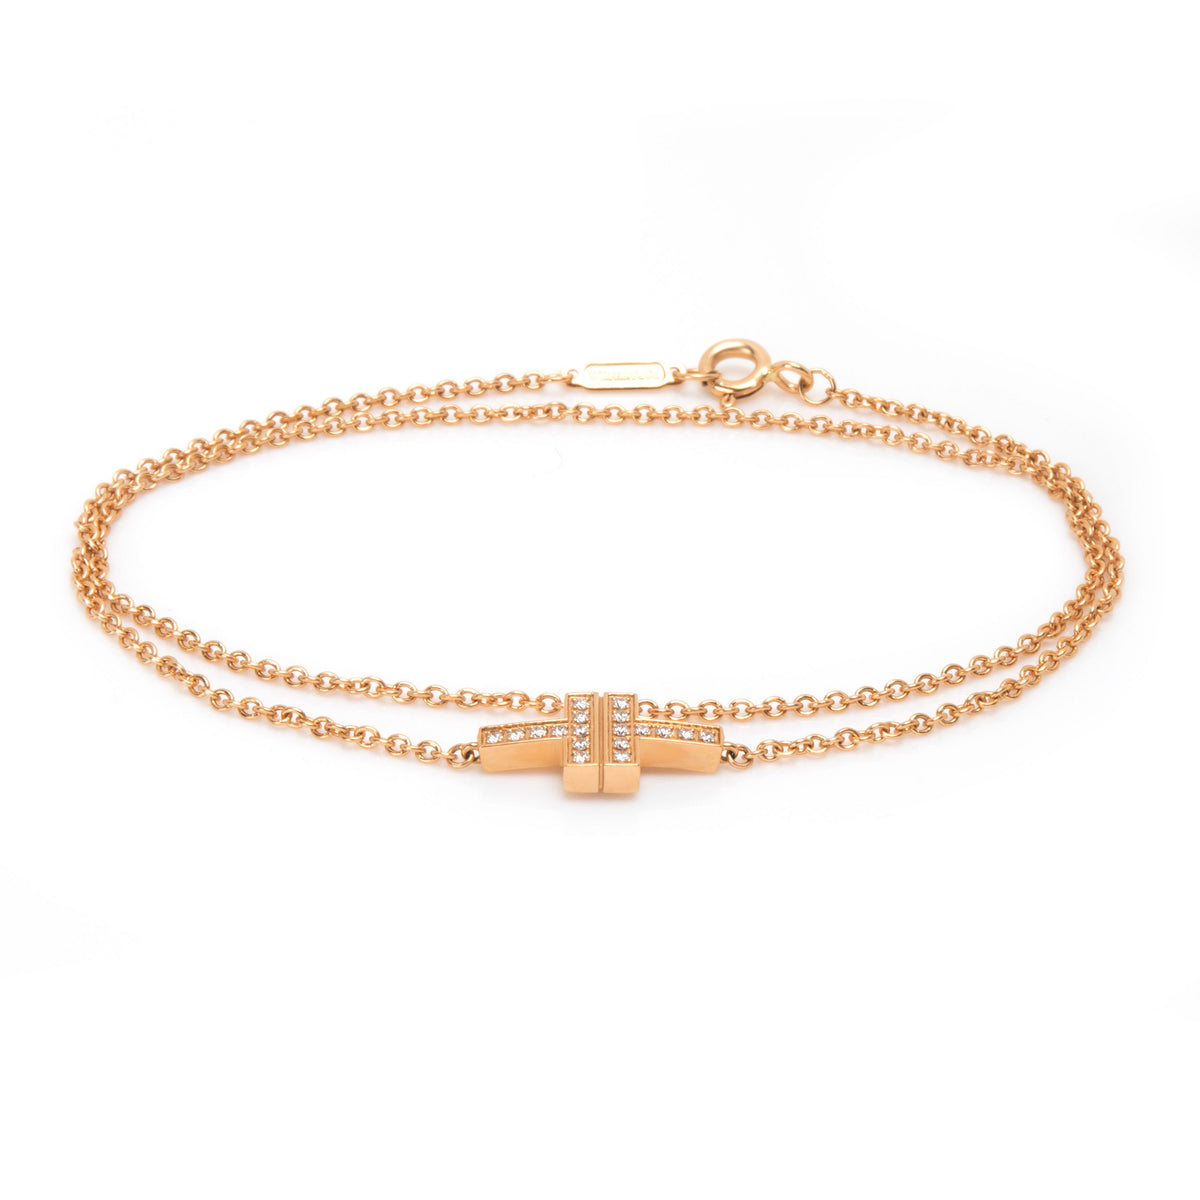 Tiffany & Co. T Two Double Chain Diamond Bracelet in 18K Rose Gold